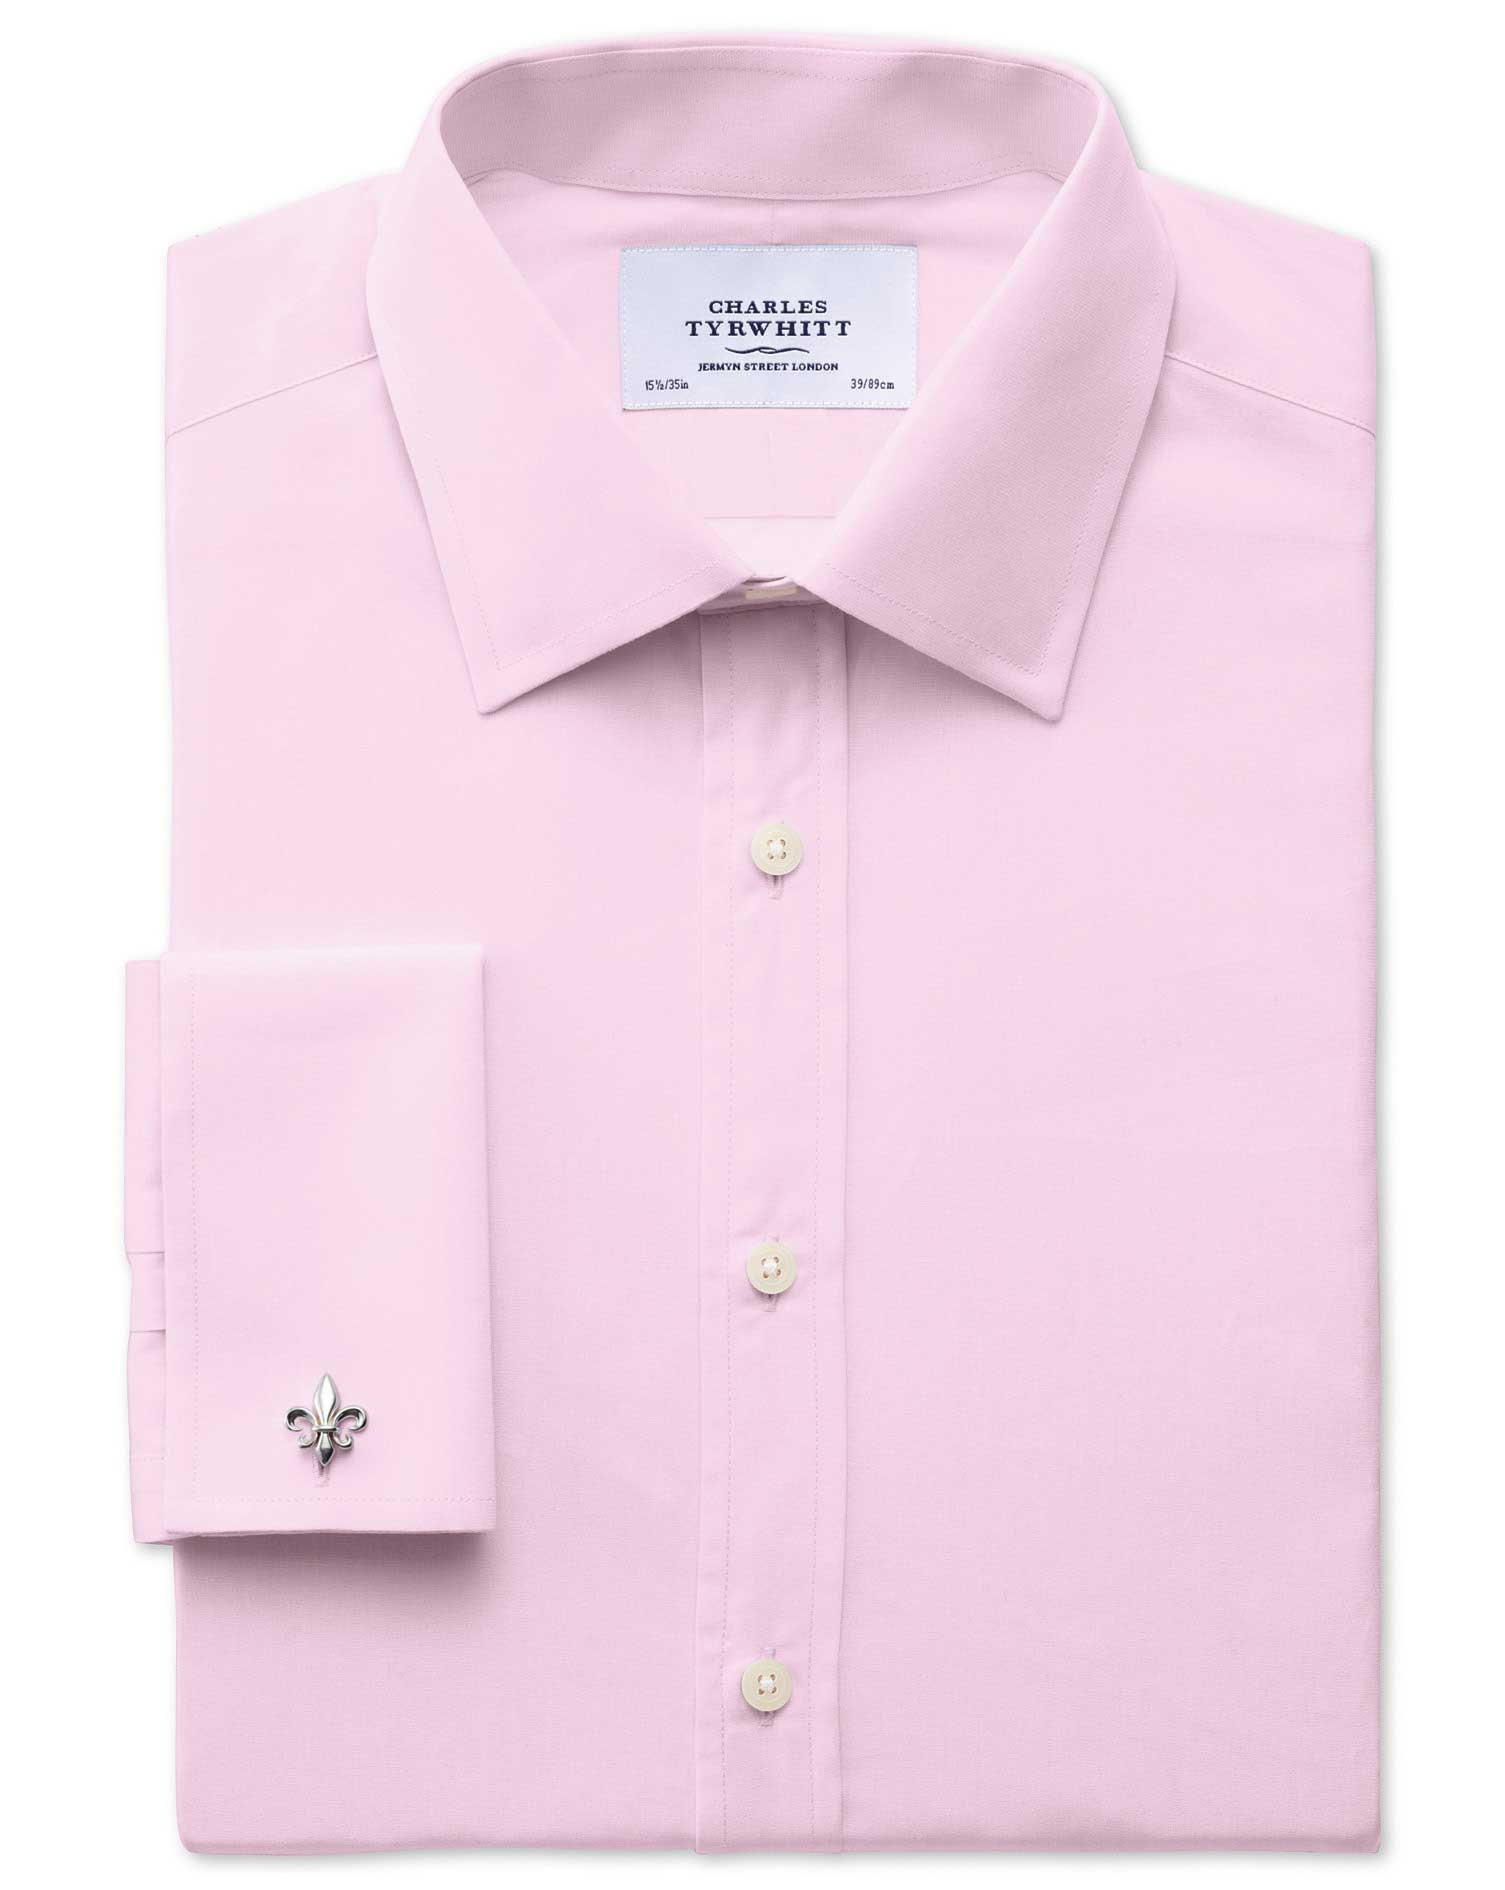 Extra Slim Fit End-On-End Pink Cotton Formal Shirt Double Cuff Size 16.5/38 by Charles Tyrwhitt